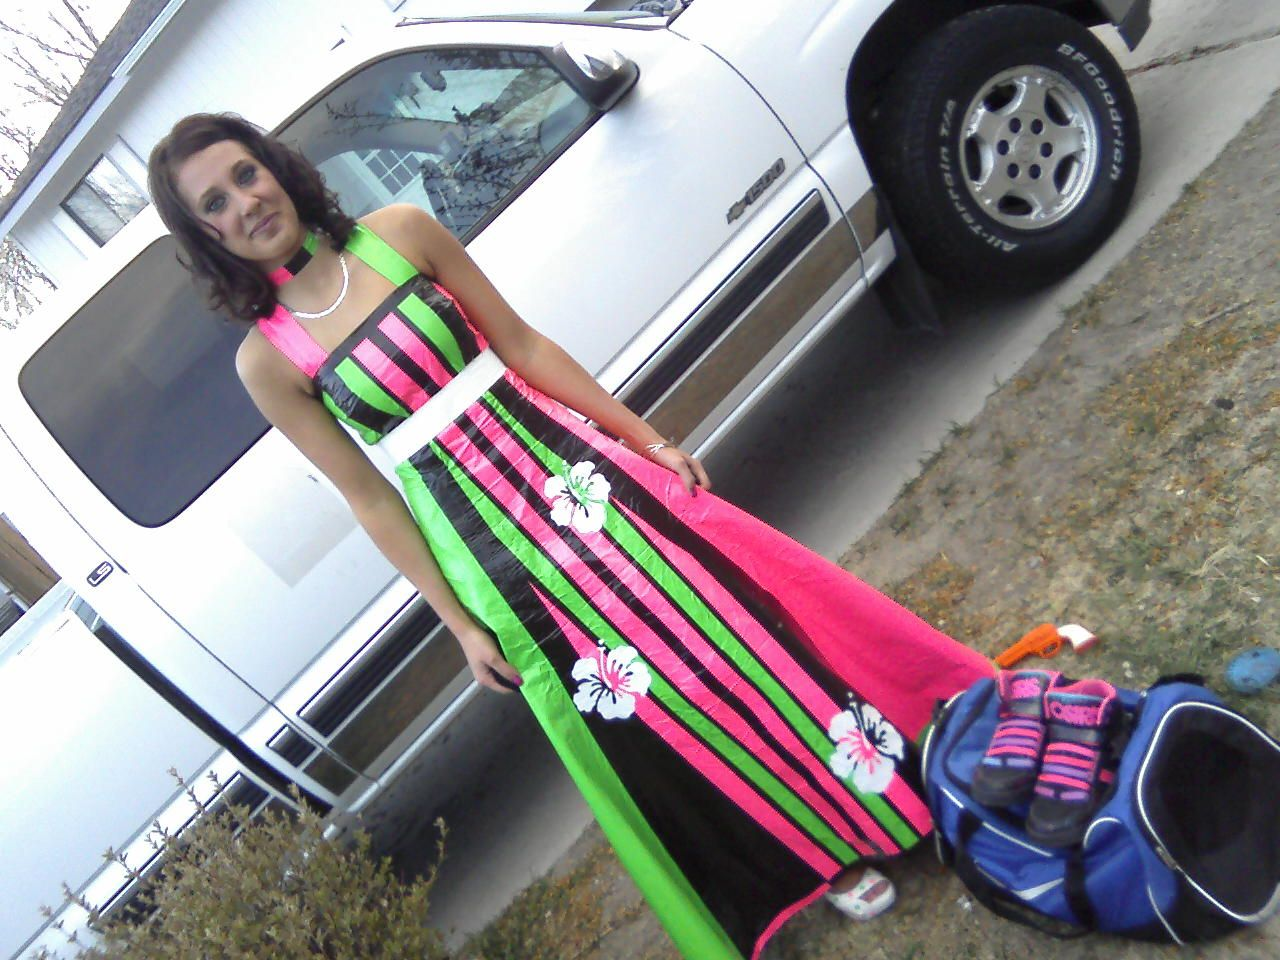 Hand made duct tape dress for prom - one of my nephew's friends